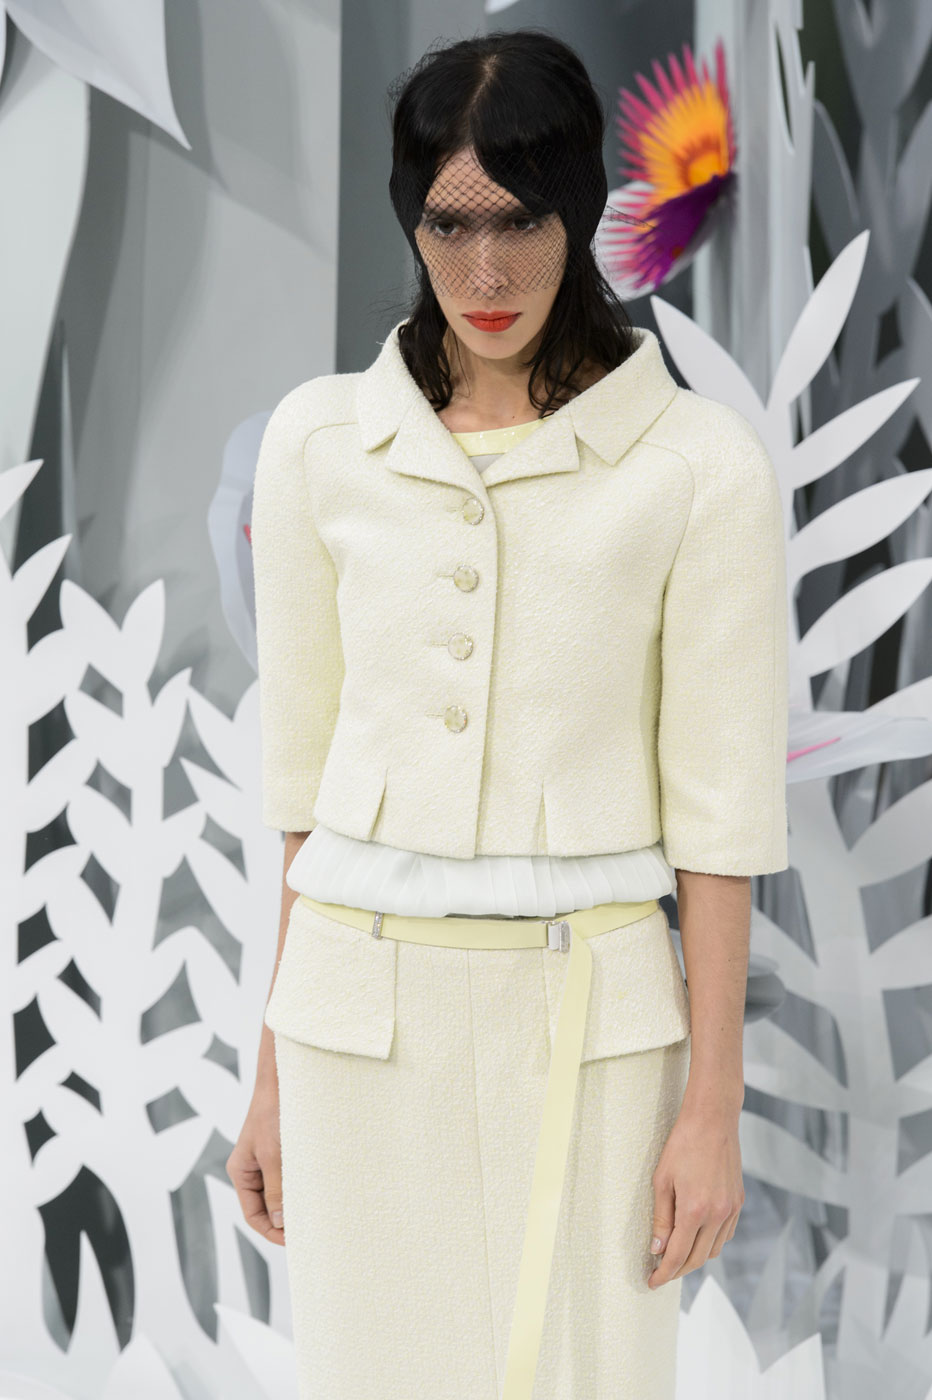 Chanel-fashion-runway-show-haute-couture-paris-spring-summer-2015-the-impression-045